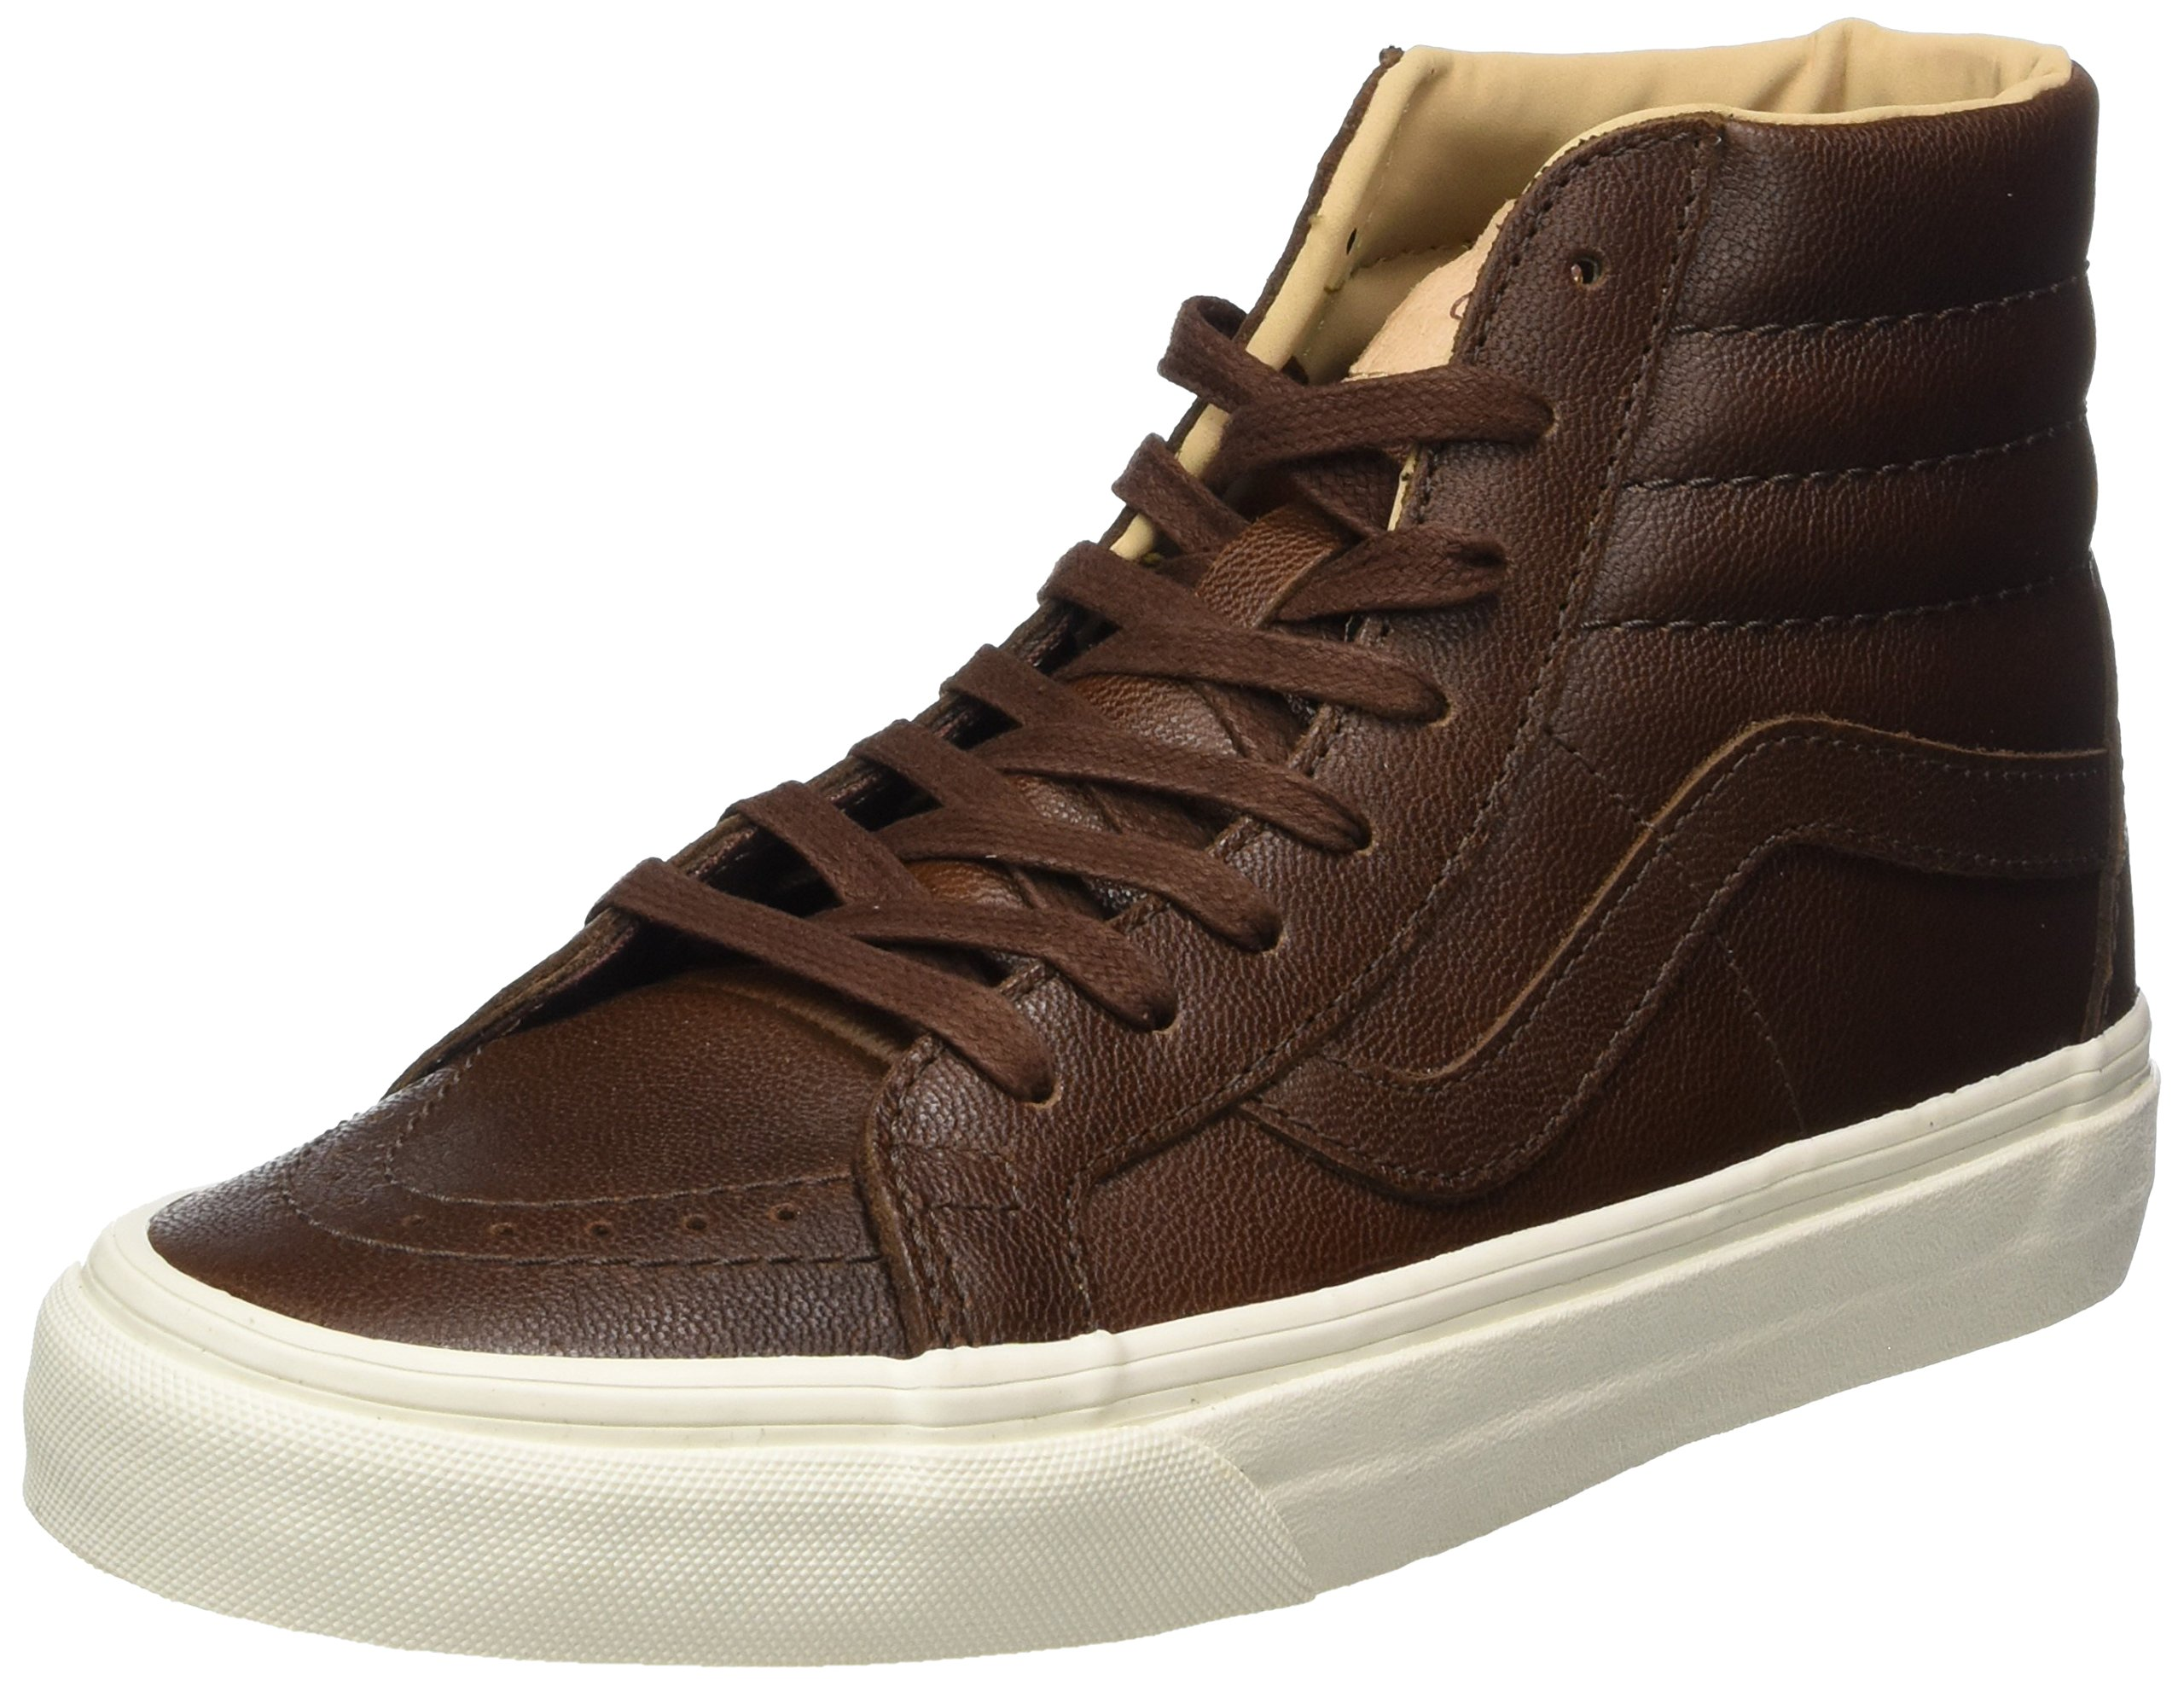 Vans Unisex Adults' Sk8-Hi Reissue Leather Trainers, Brown (Lux Leather/Shaved Chocolate/Porcini), 6 UK 39 EU